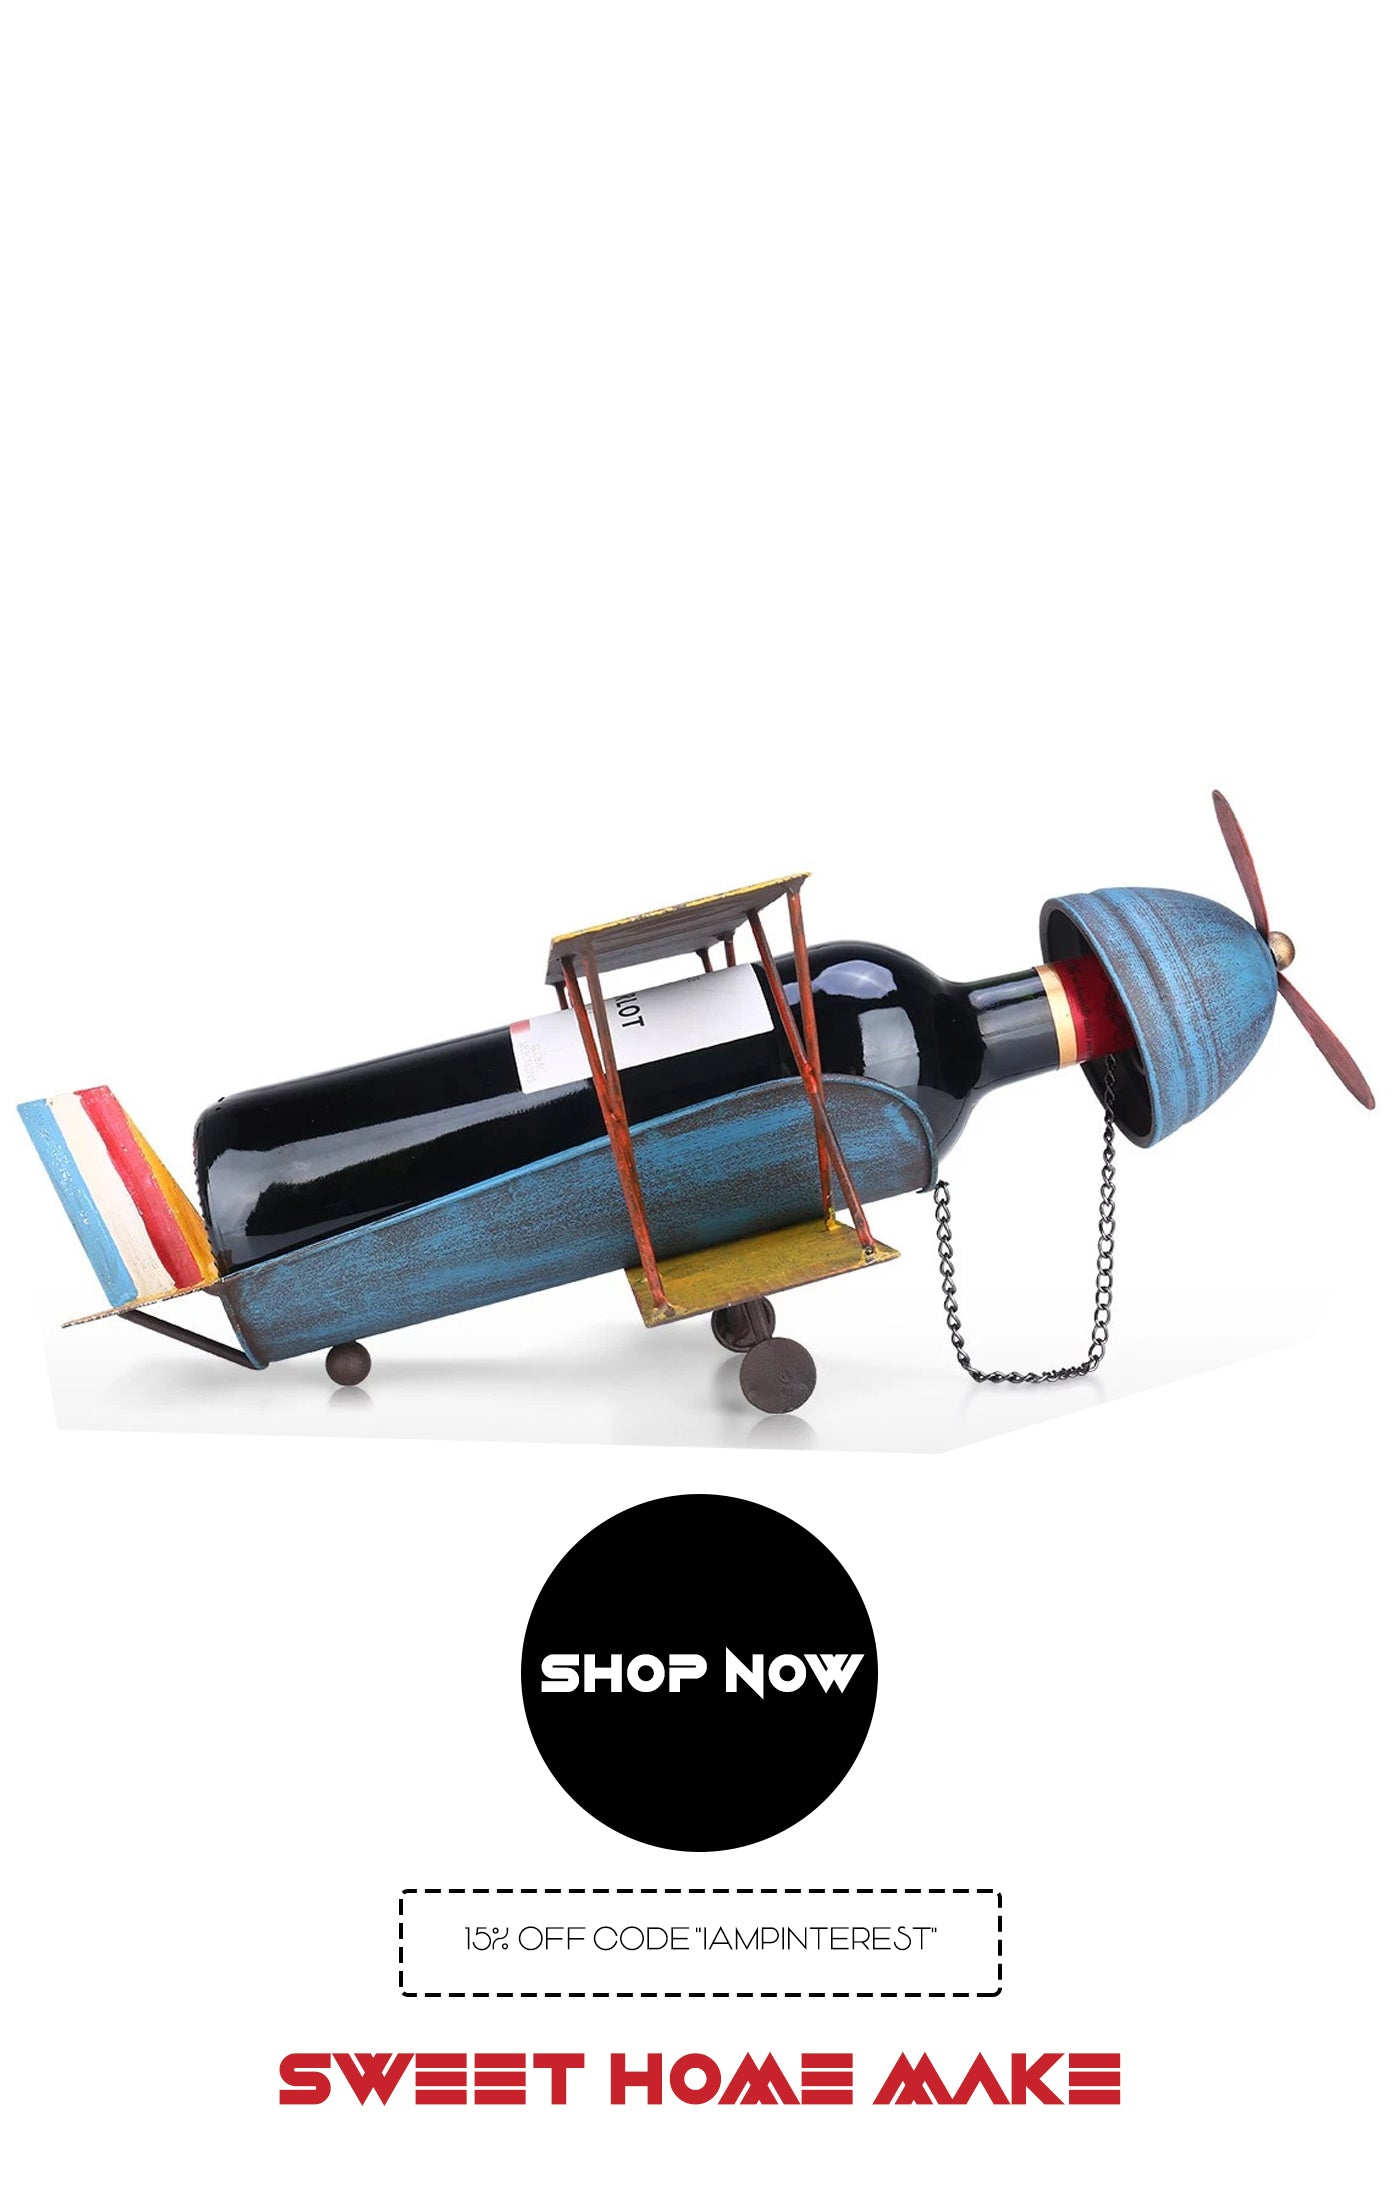 Toy Airplanes with Gifts For Wine Lovers